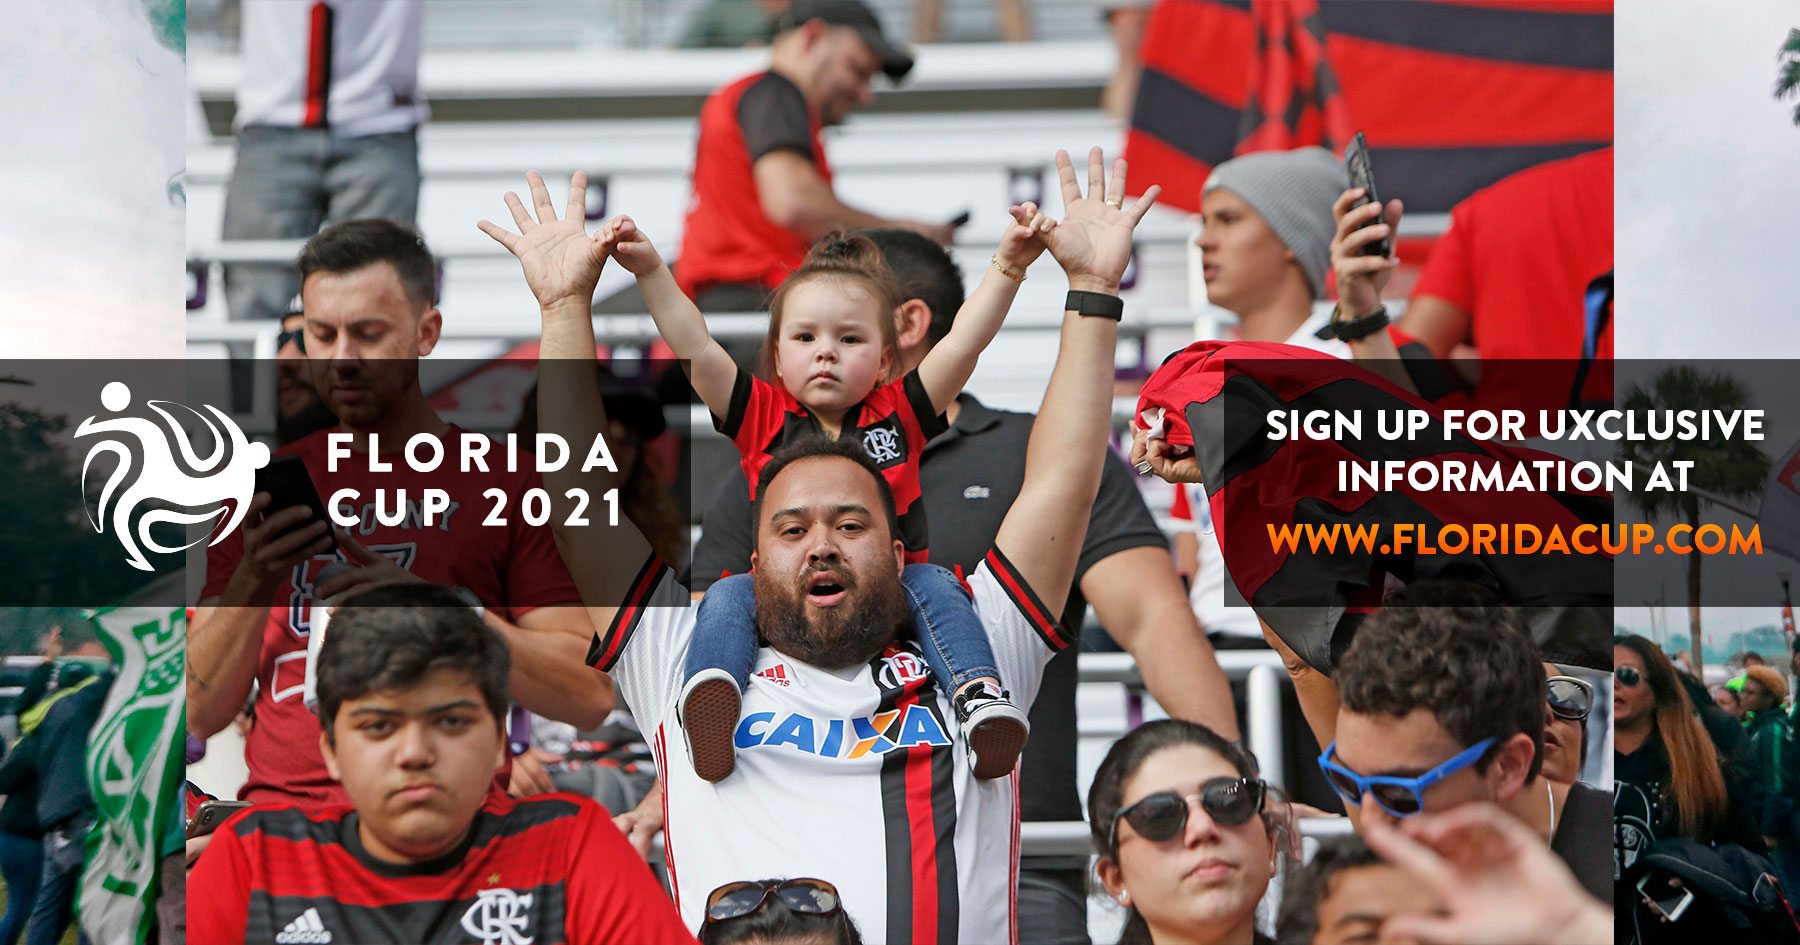 Florida Cup 2021 - Where Clubs Become Nations